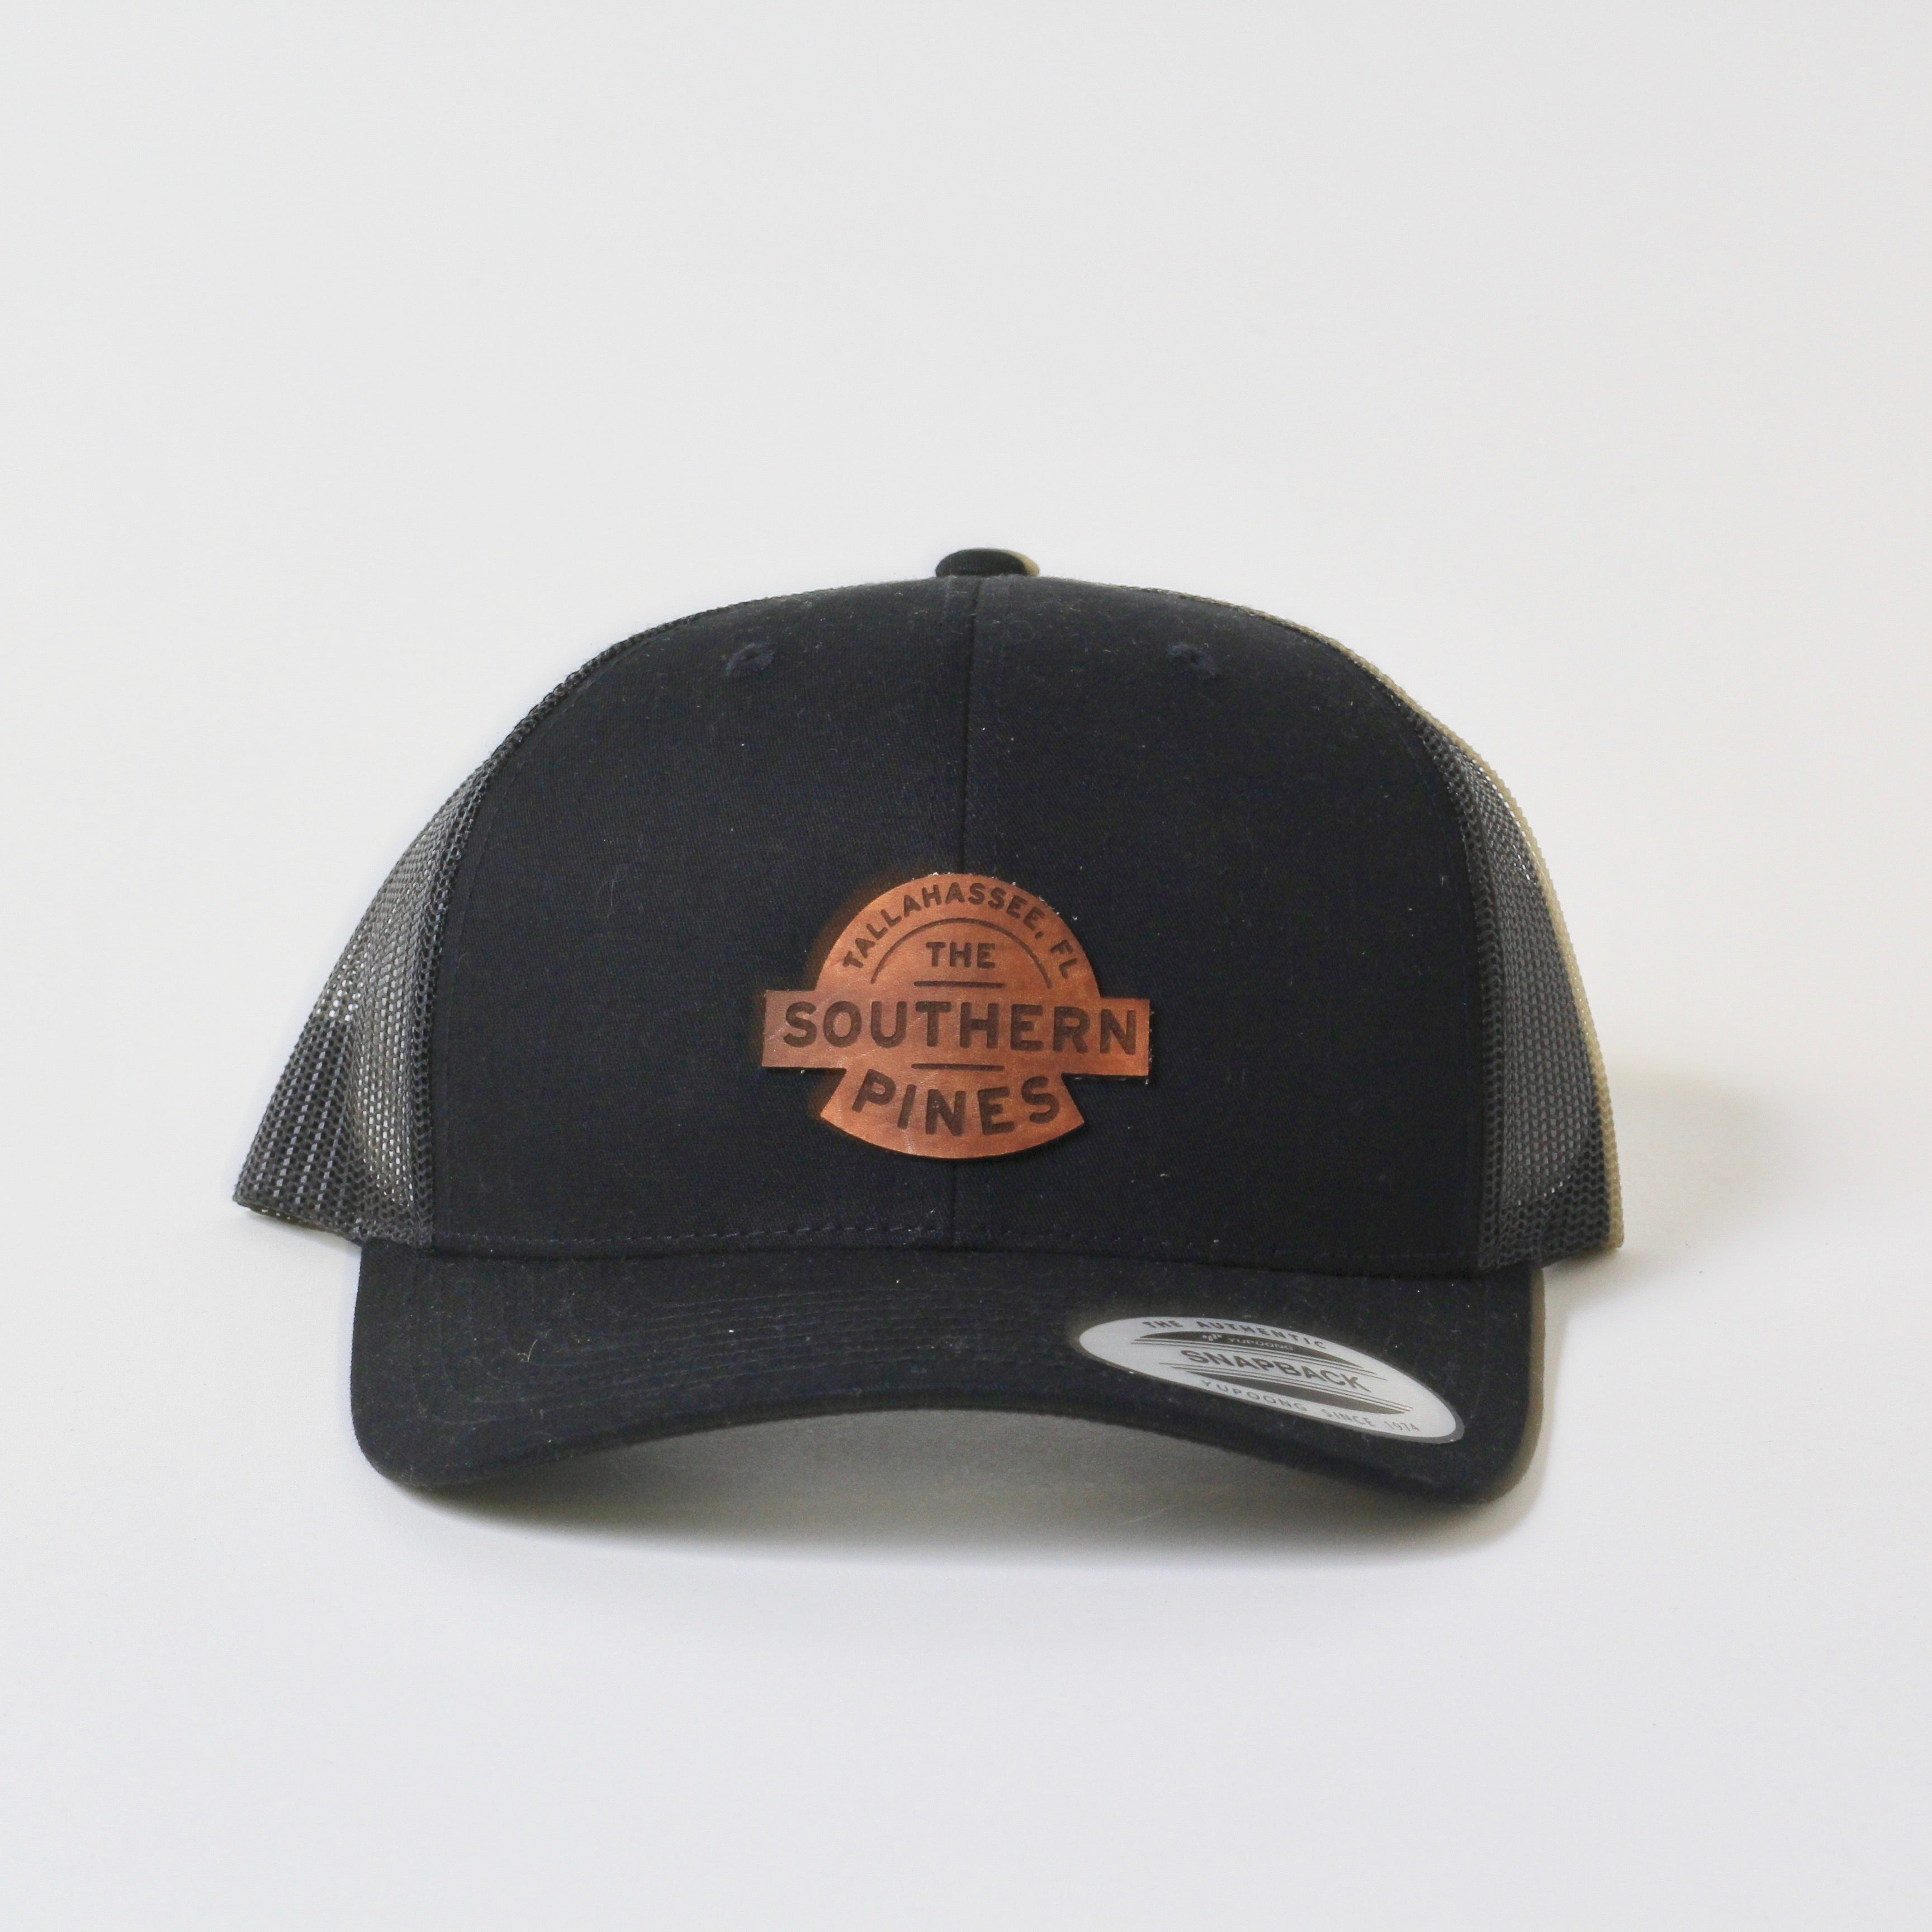 Southern Pines Trucker Hat | Leather | Black on Black | The Southern Pines + Salt and Pine Company